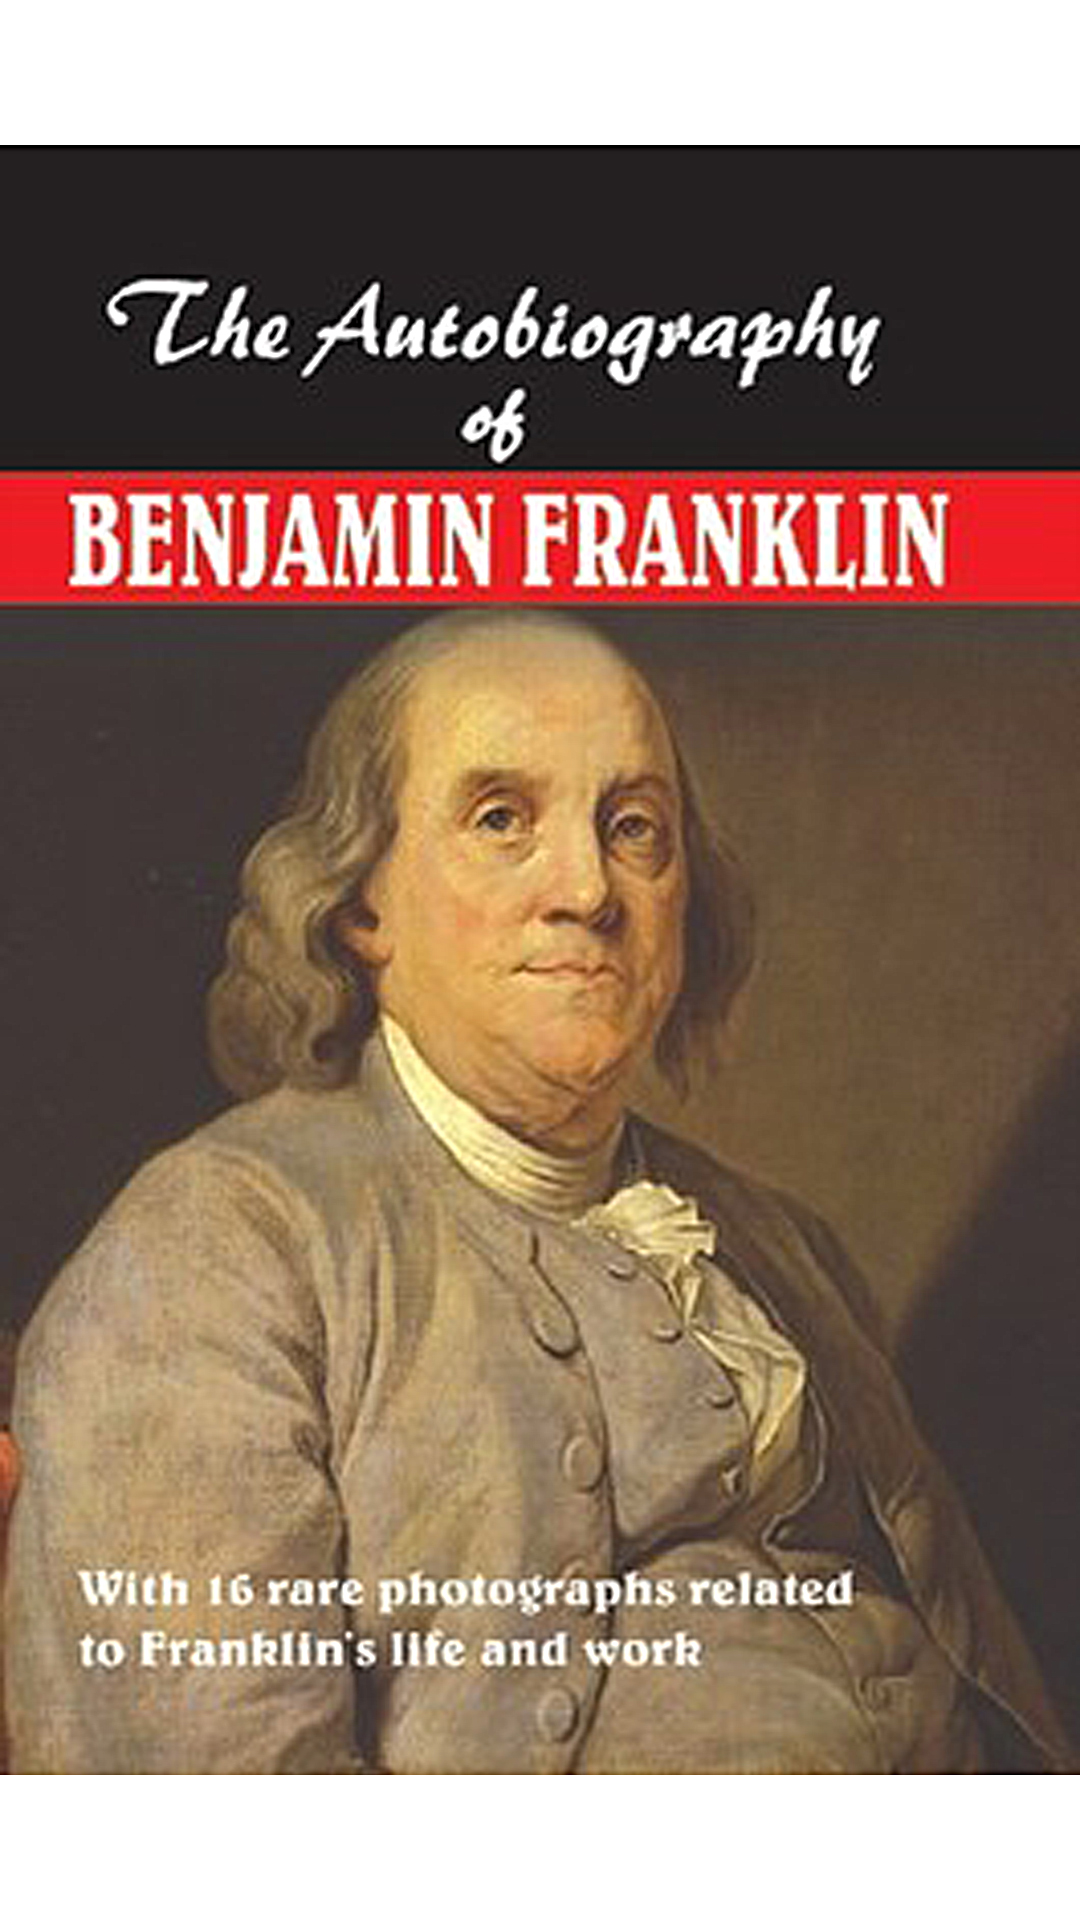 essay on benjamin franklins autobiography Benjamin franklin pioneered the spirit of self-help in america and john locke's essay concerning human understanding franklin's autobiography.